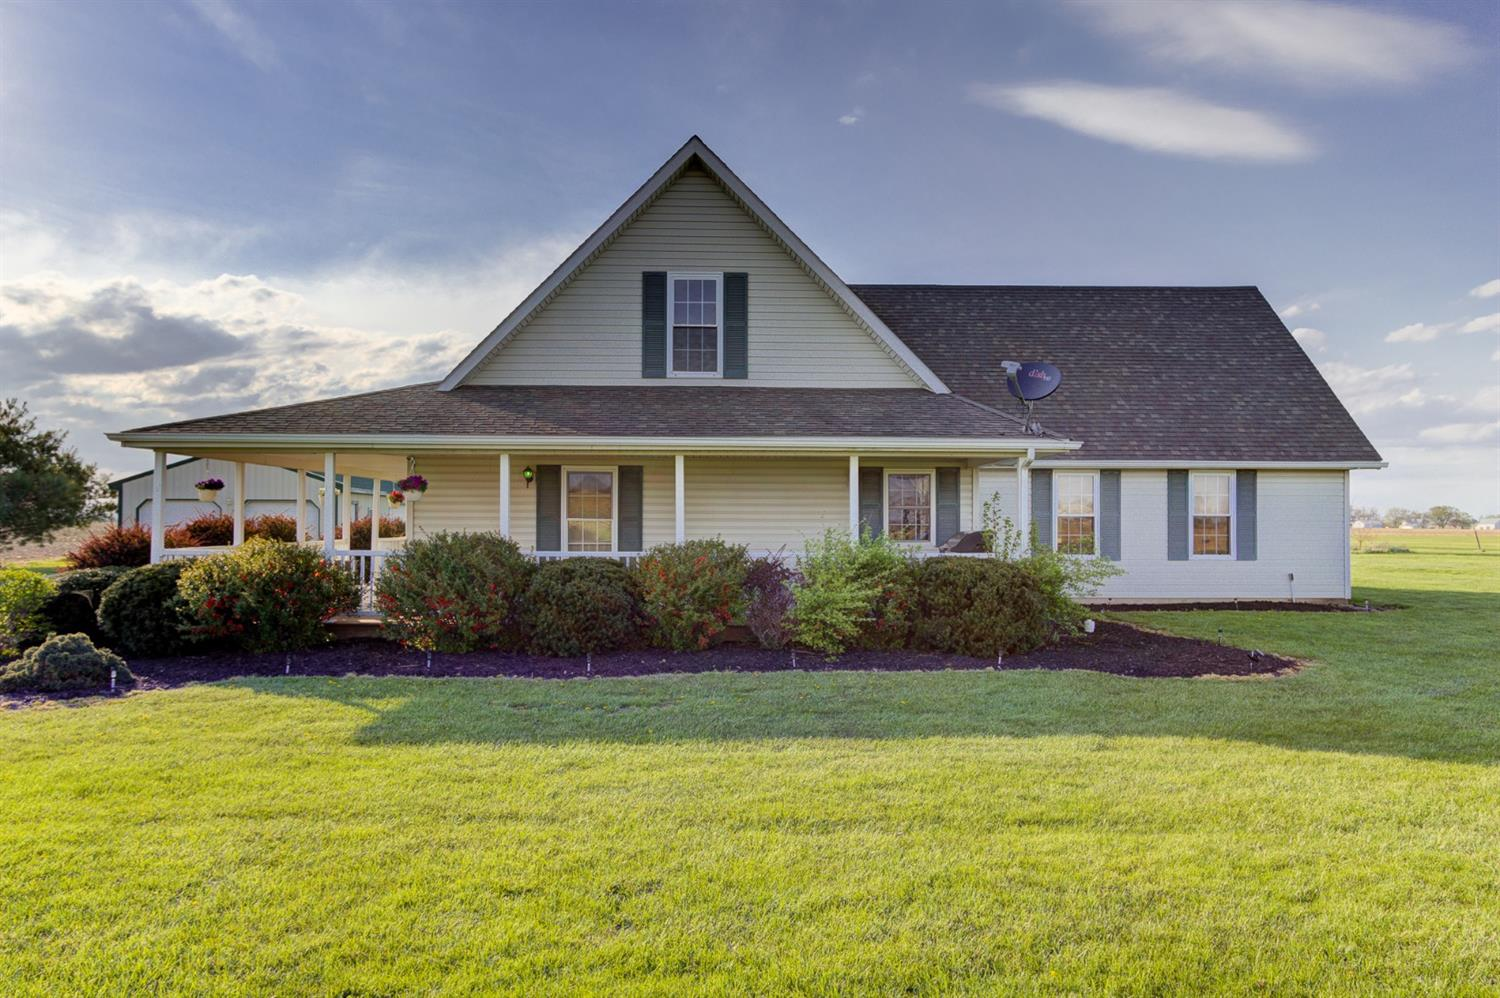 1417 Dailey Rd Green Twp. - Clinton Co., OH